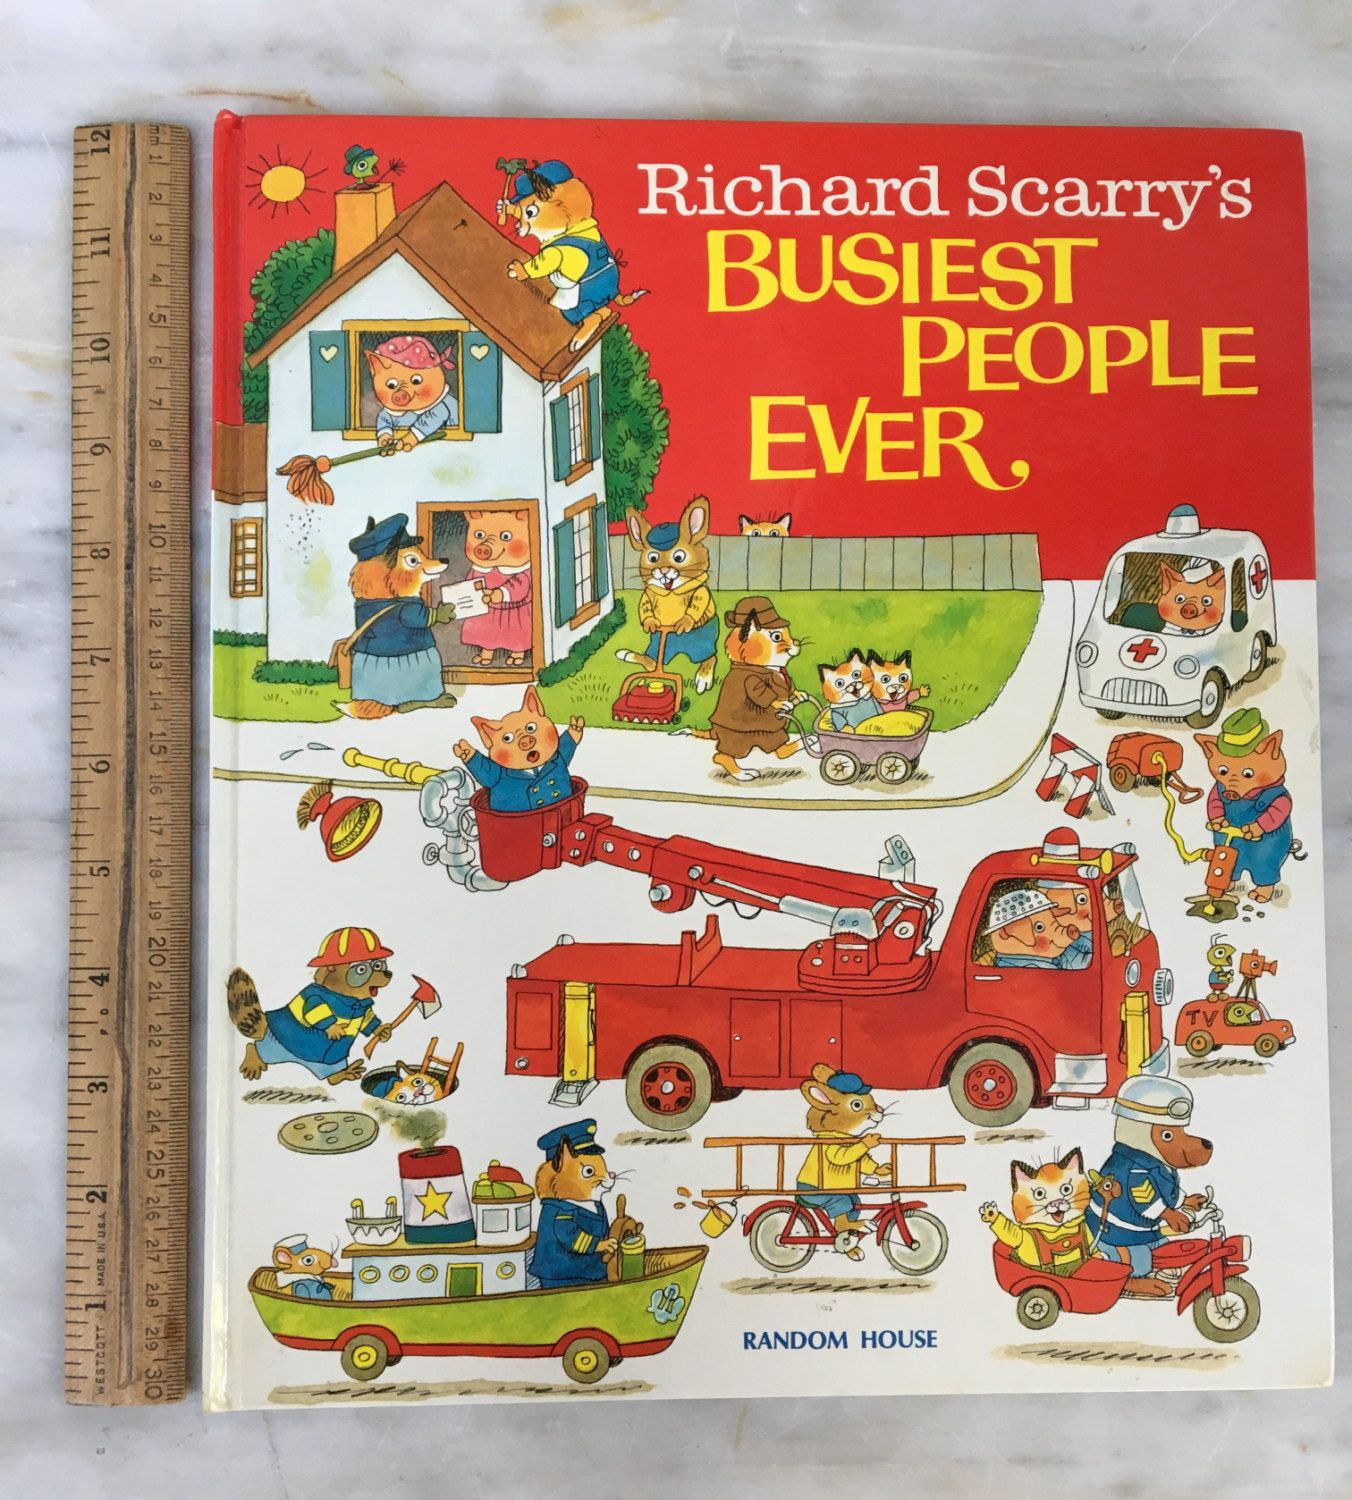 vintage Richard Scarry's Busiest People Ever, Random House, 1976 copyright, large book, children's book, collectible by MotherMuse on Etsy